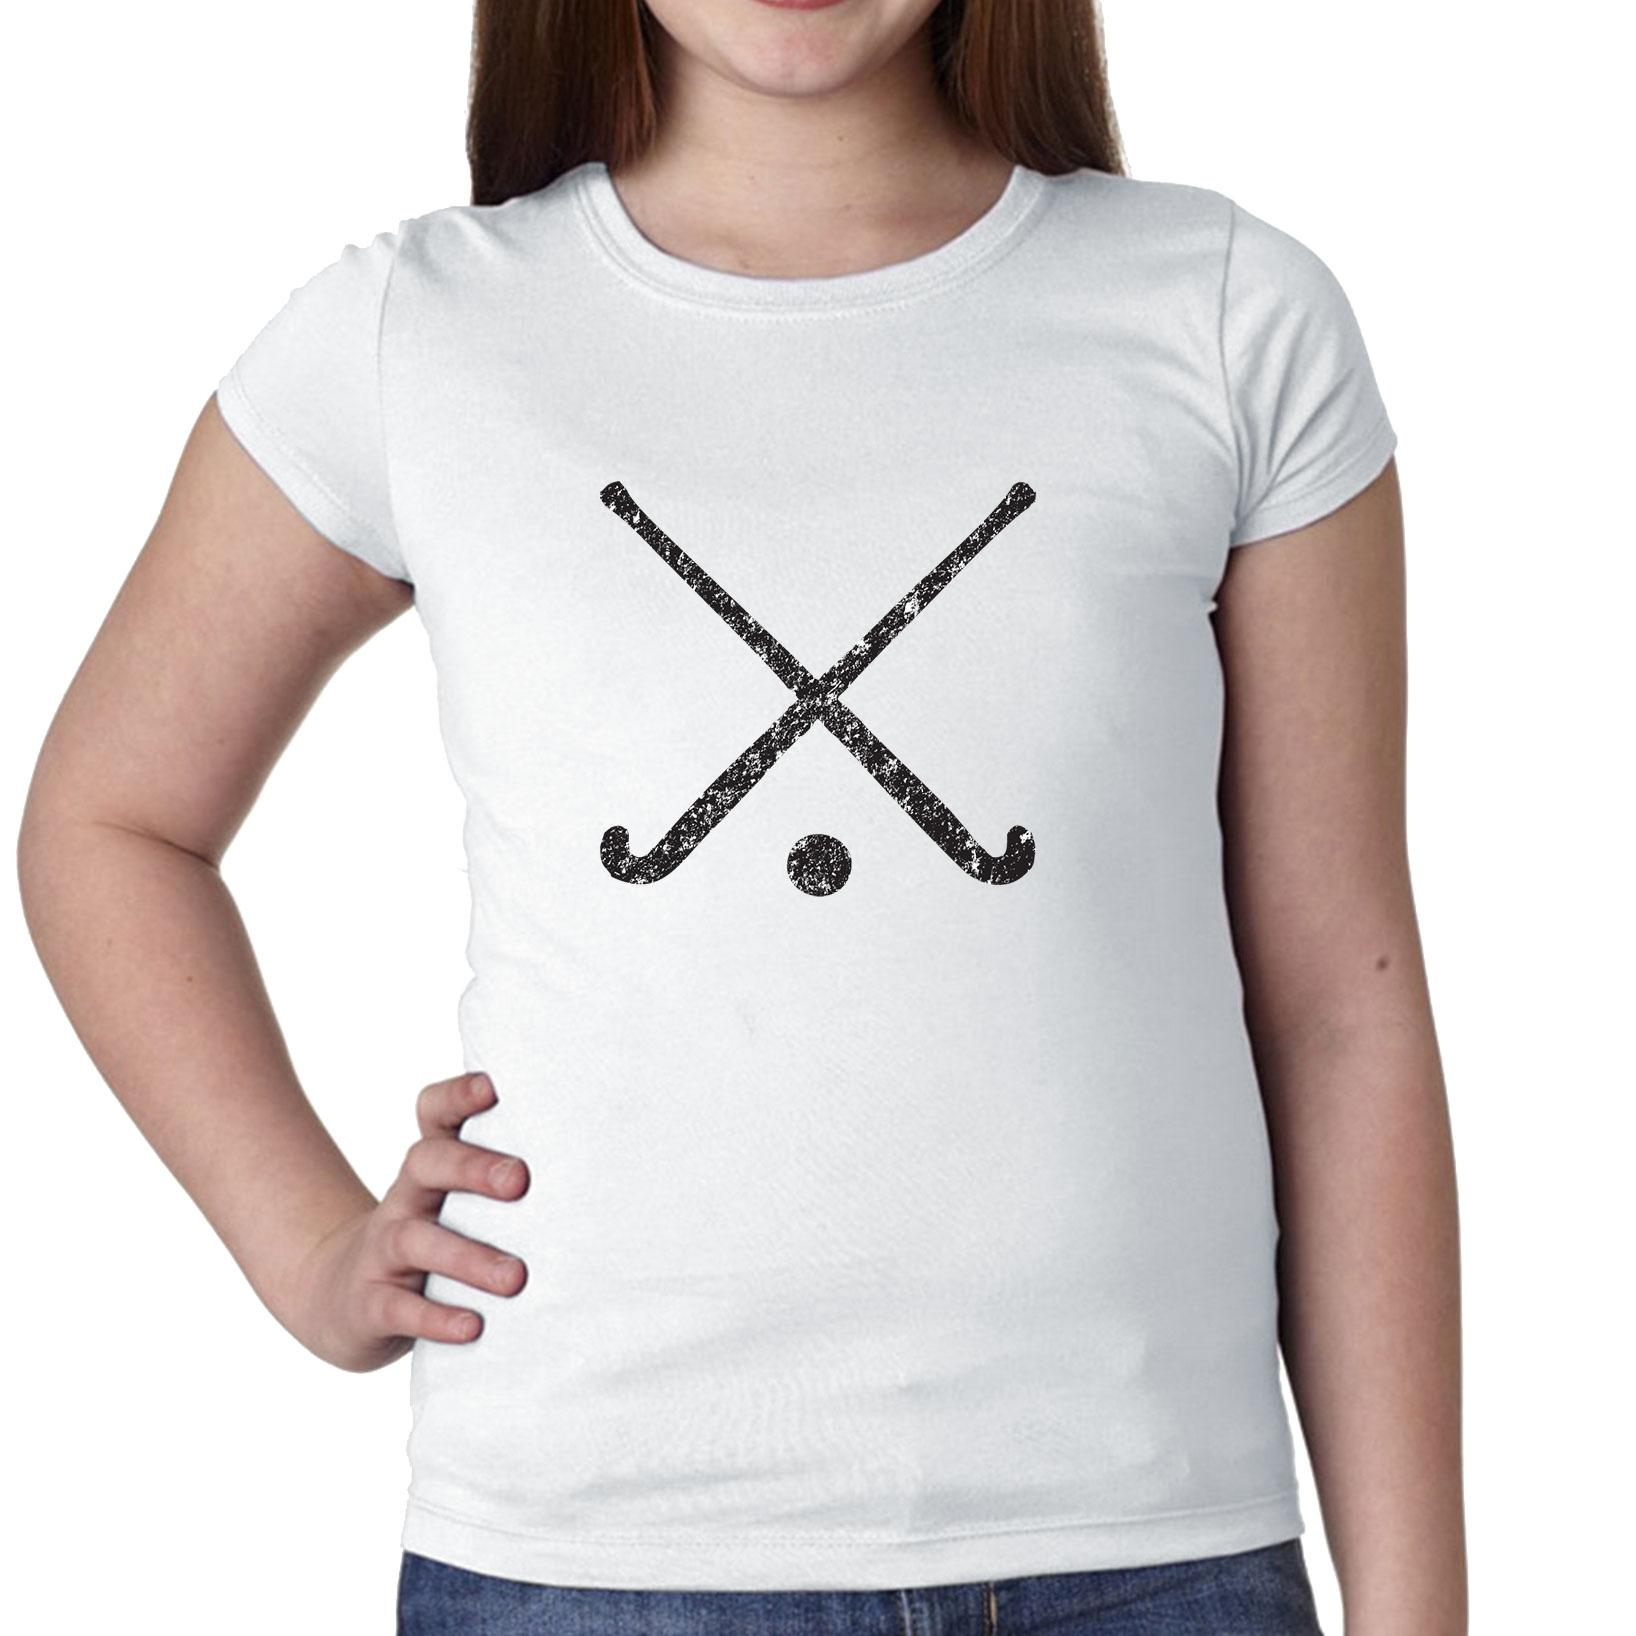 Field Hockey Sticks Crossed With Ball Graphic Silhouette Girl's Cotton Youth T-Shirt by Hollywood Thread